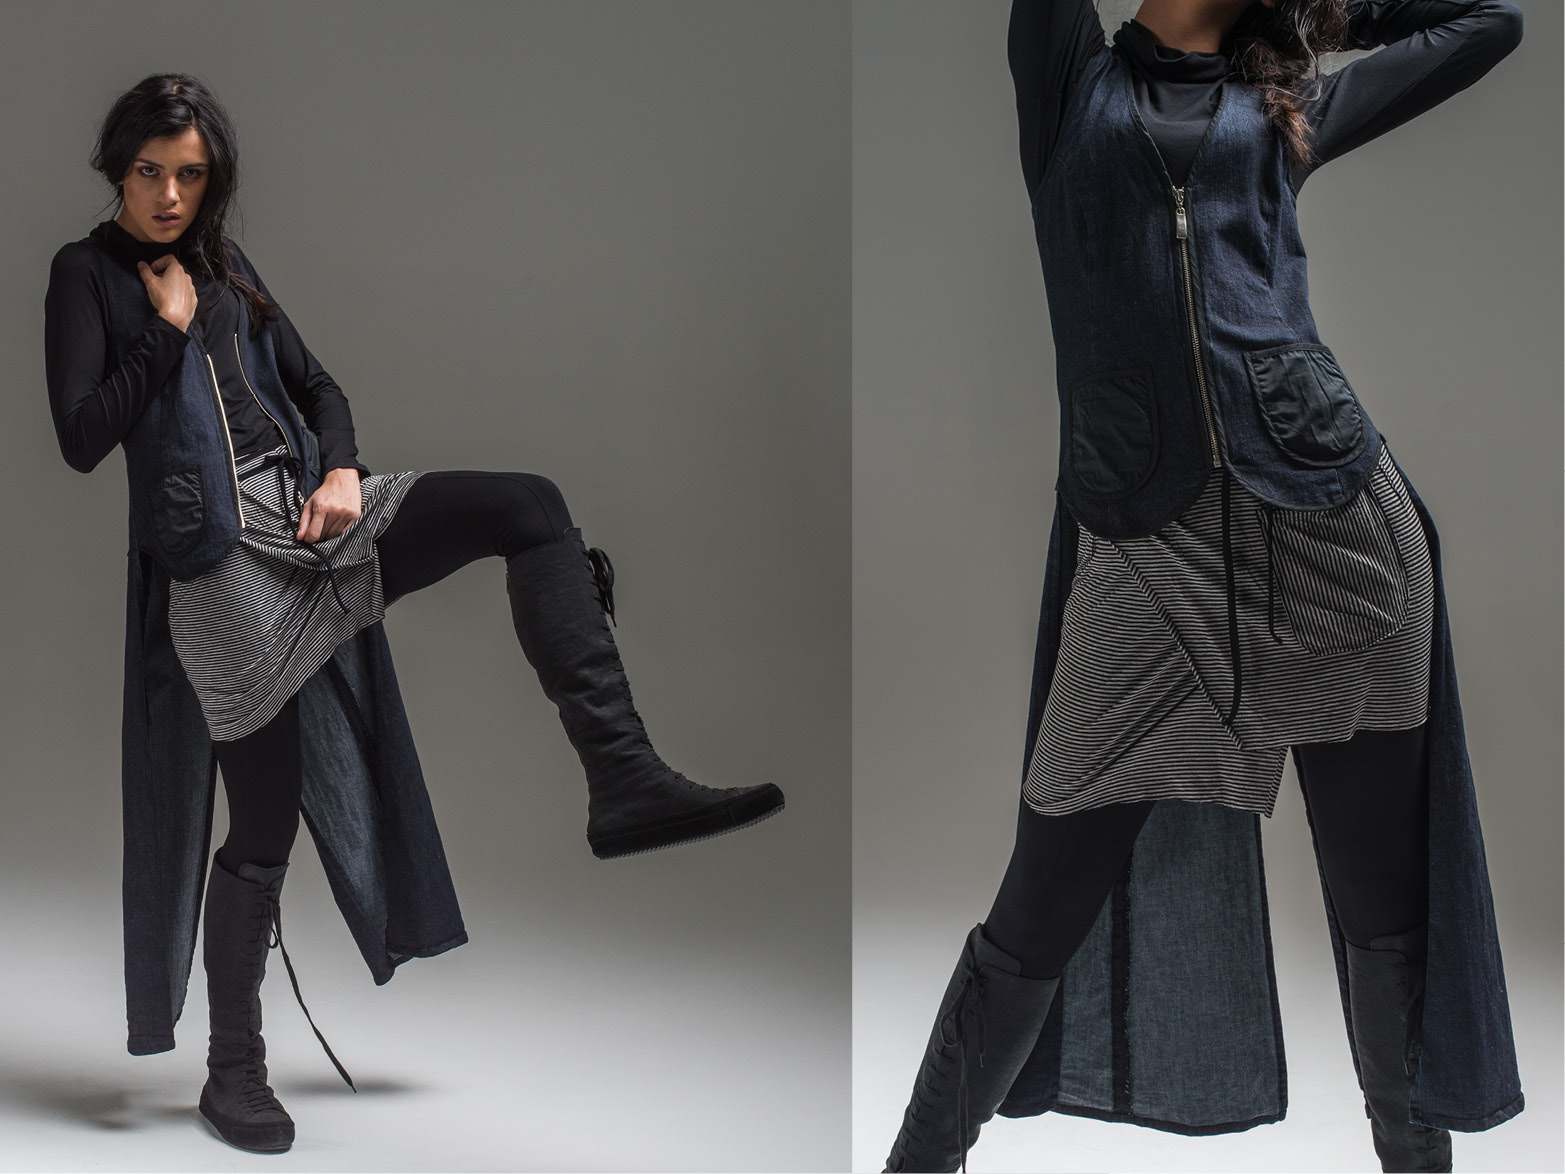 L+R: Alex top, Lanky legs, Cee Cee wrap + Carrie tails